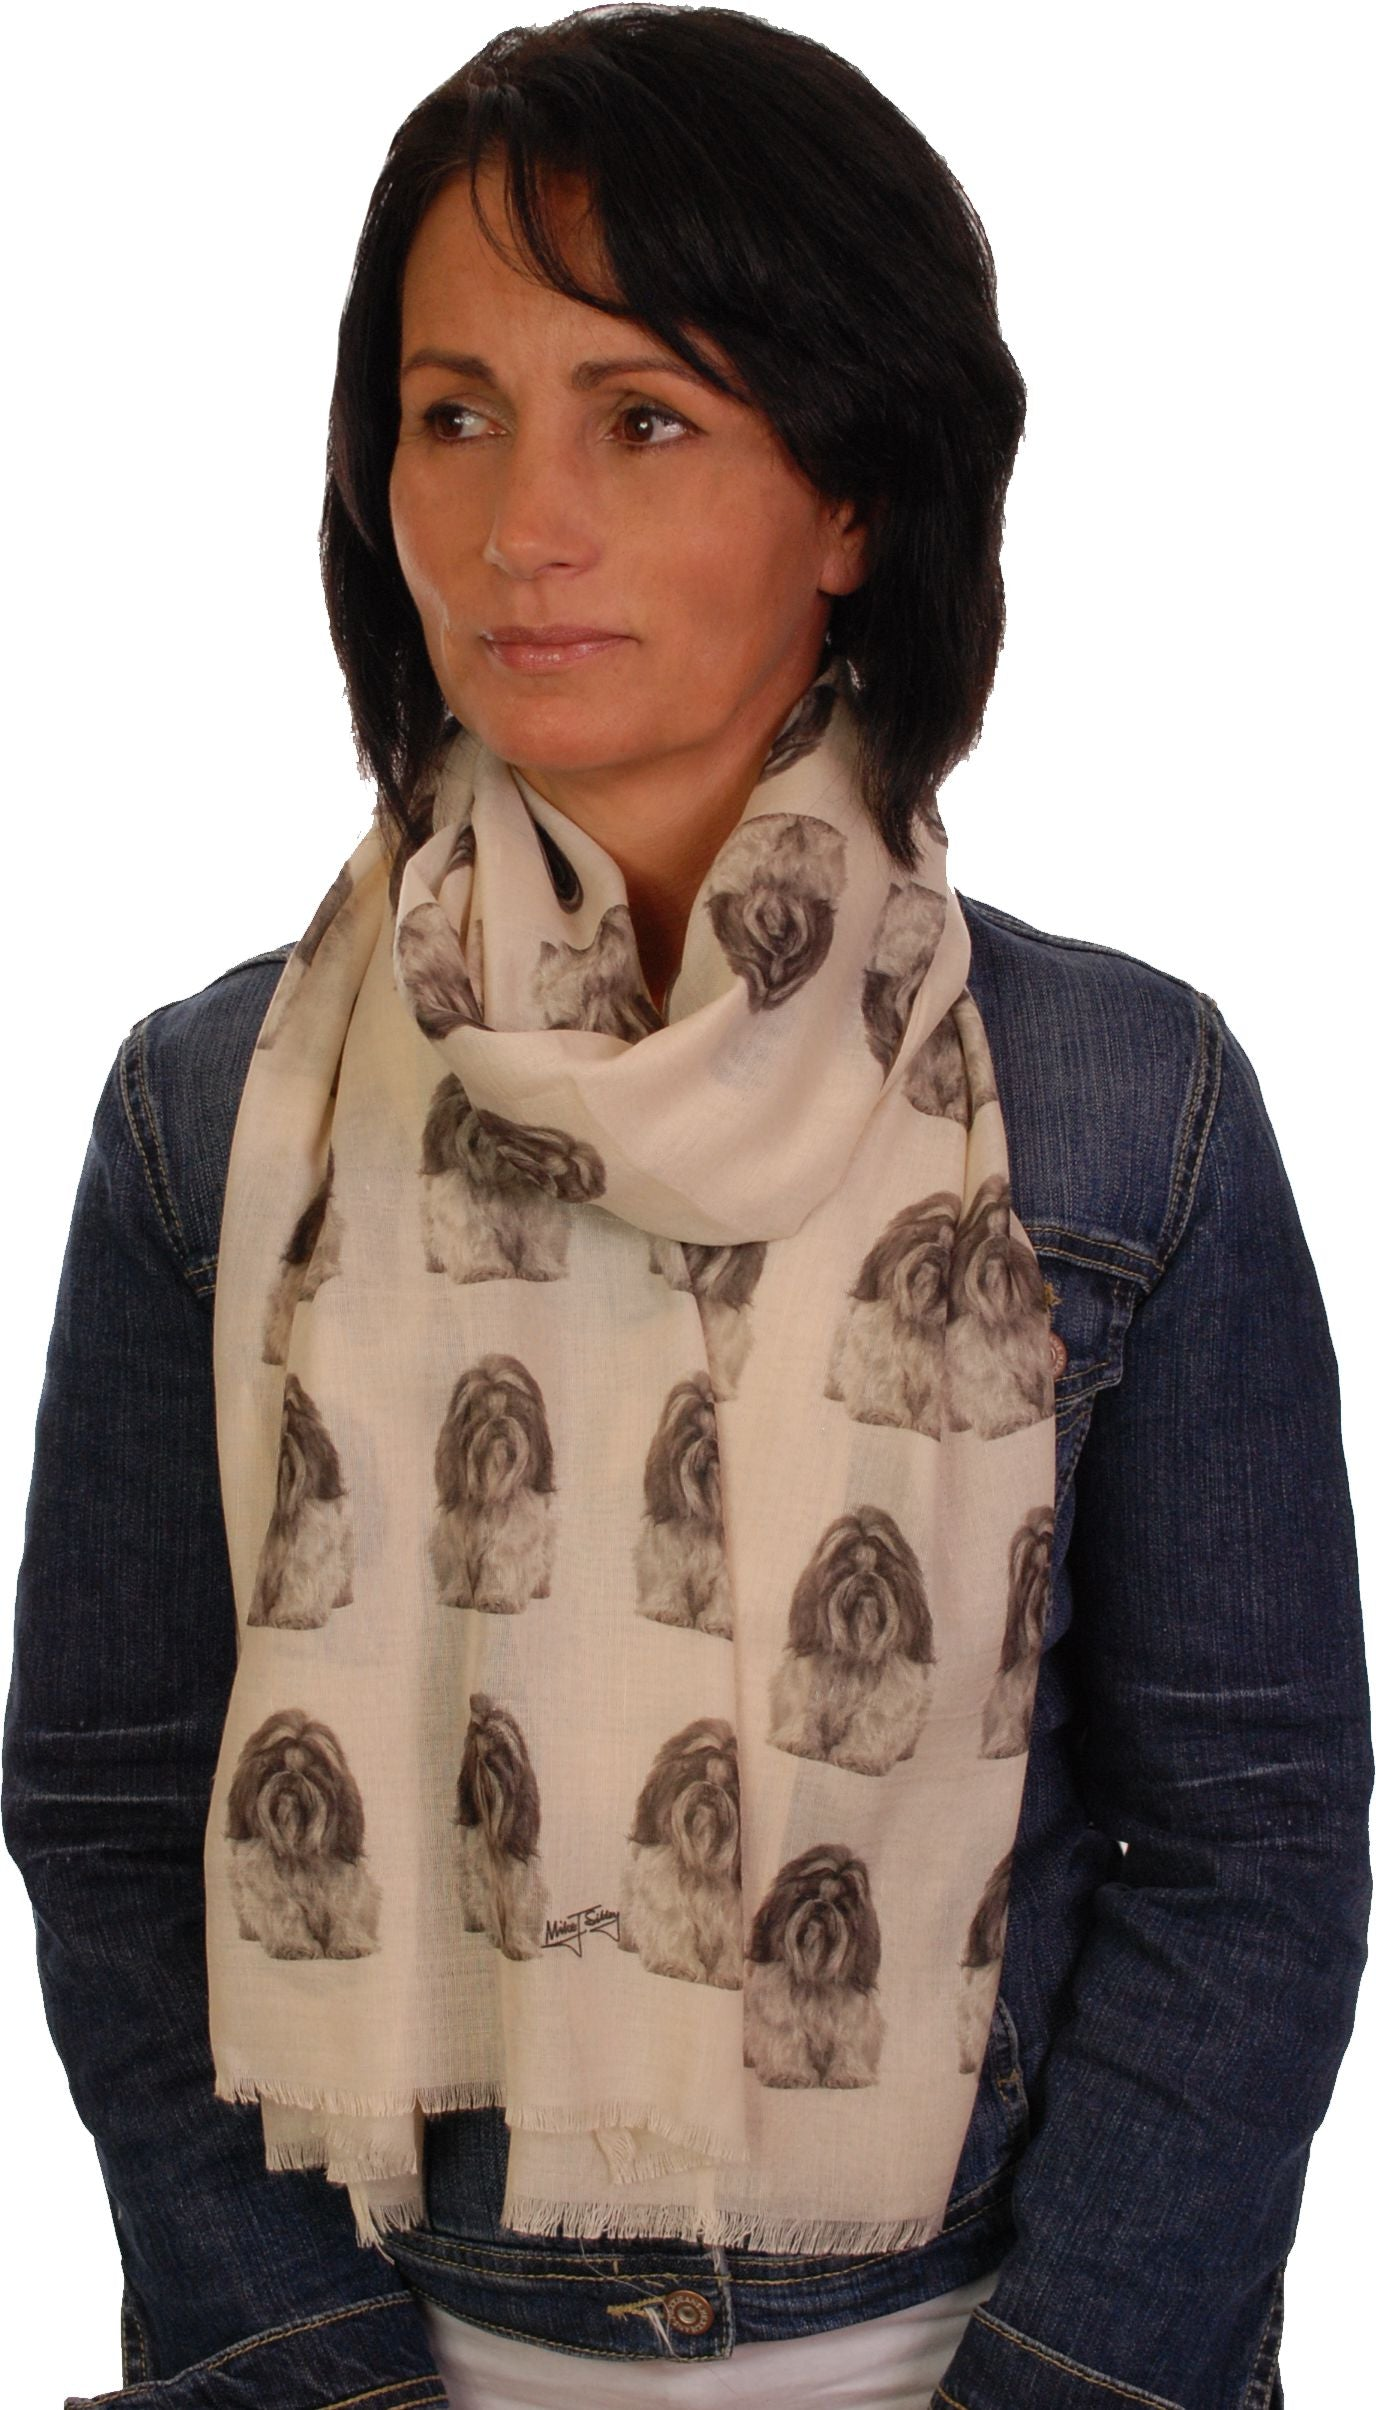 Shih Tzu Scarf - Mike Sibley Shih Tzu Design Ladies Fashion Scarf - Hand Printed In The UK